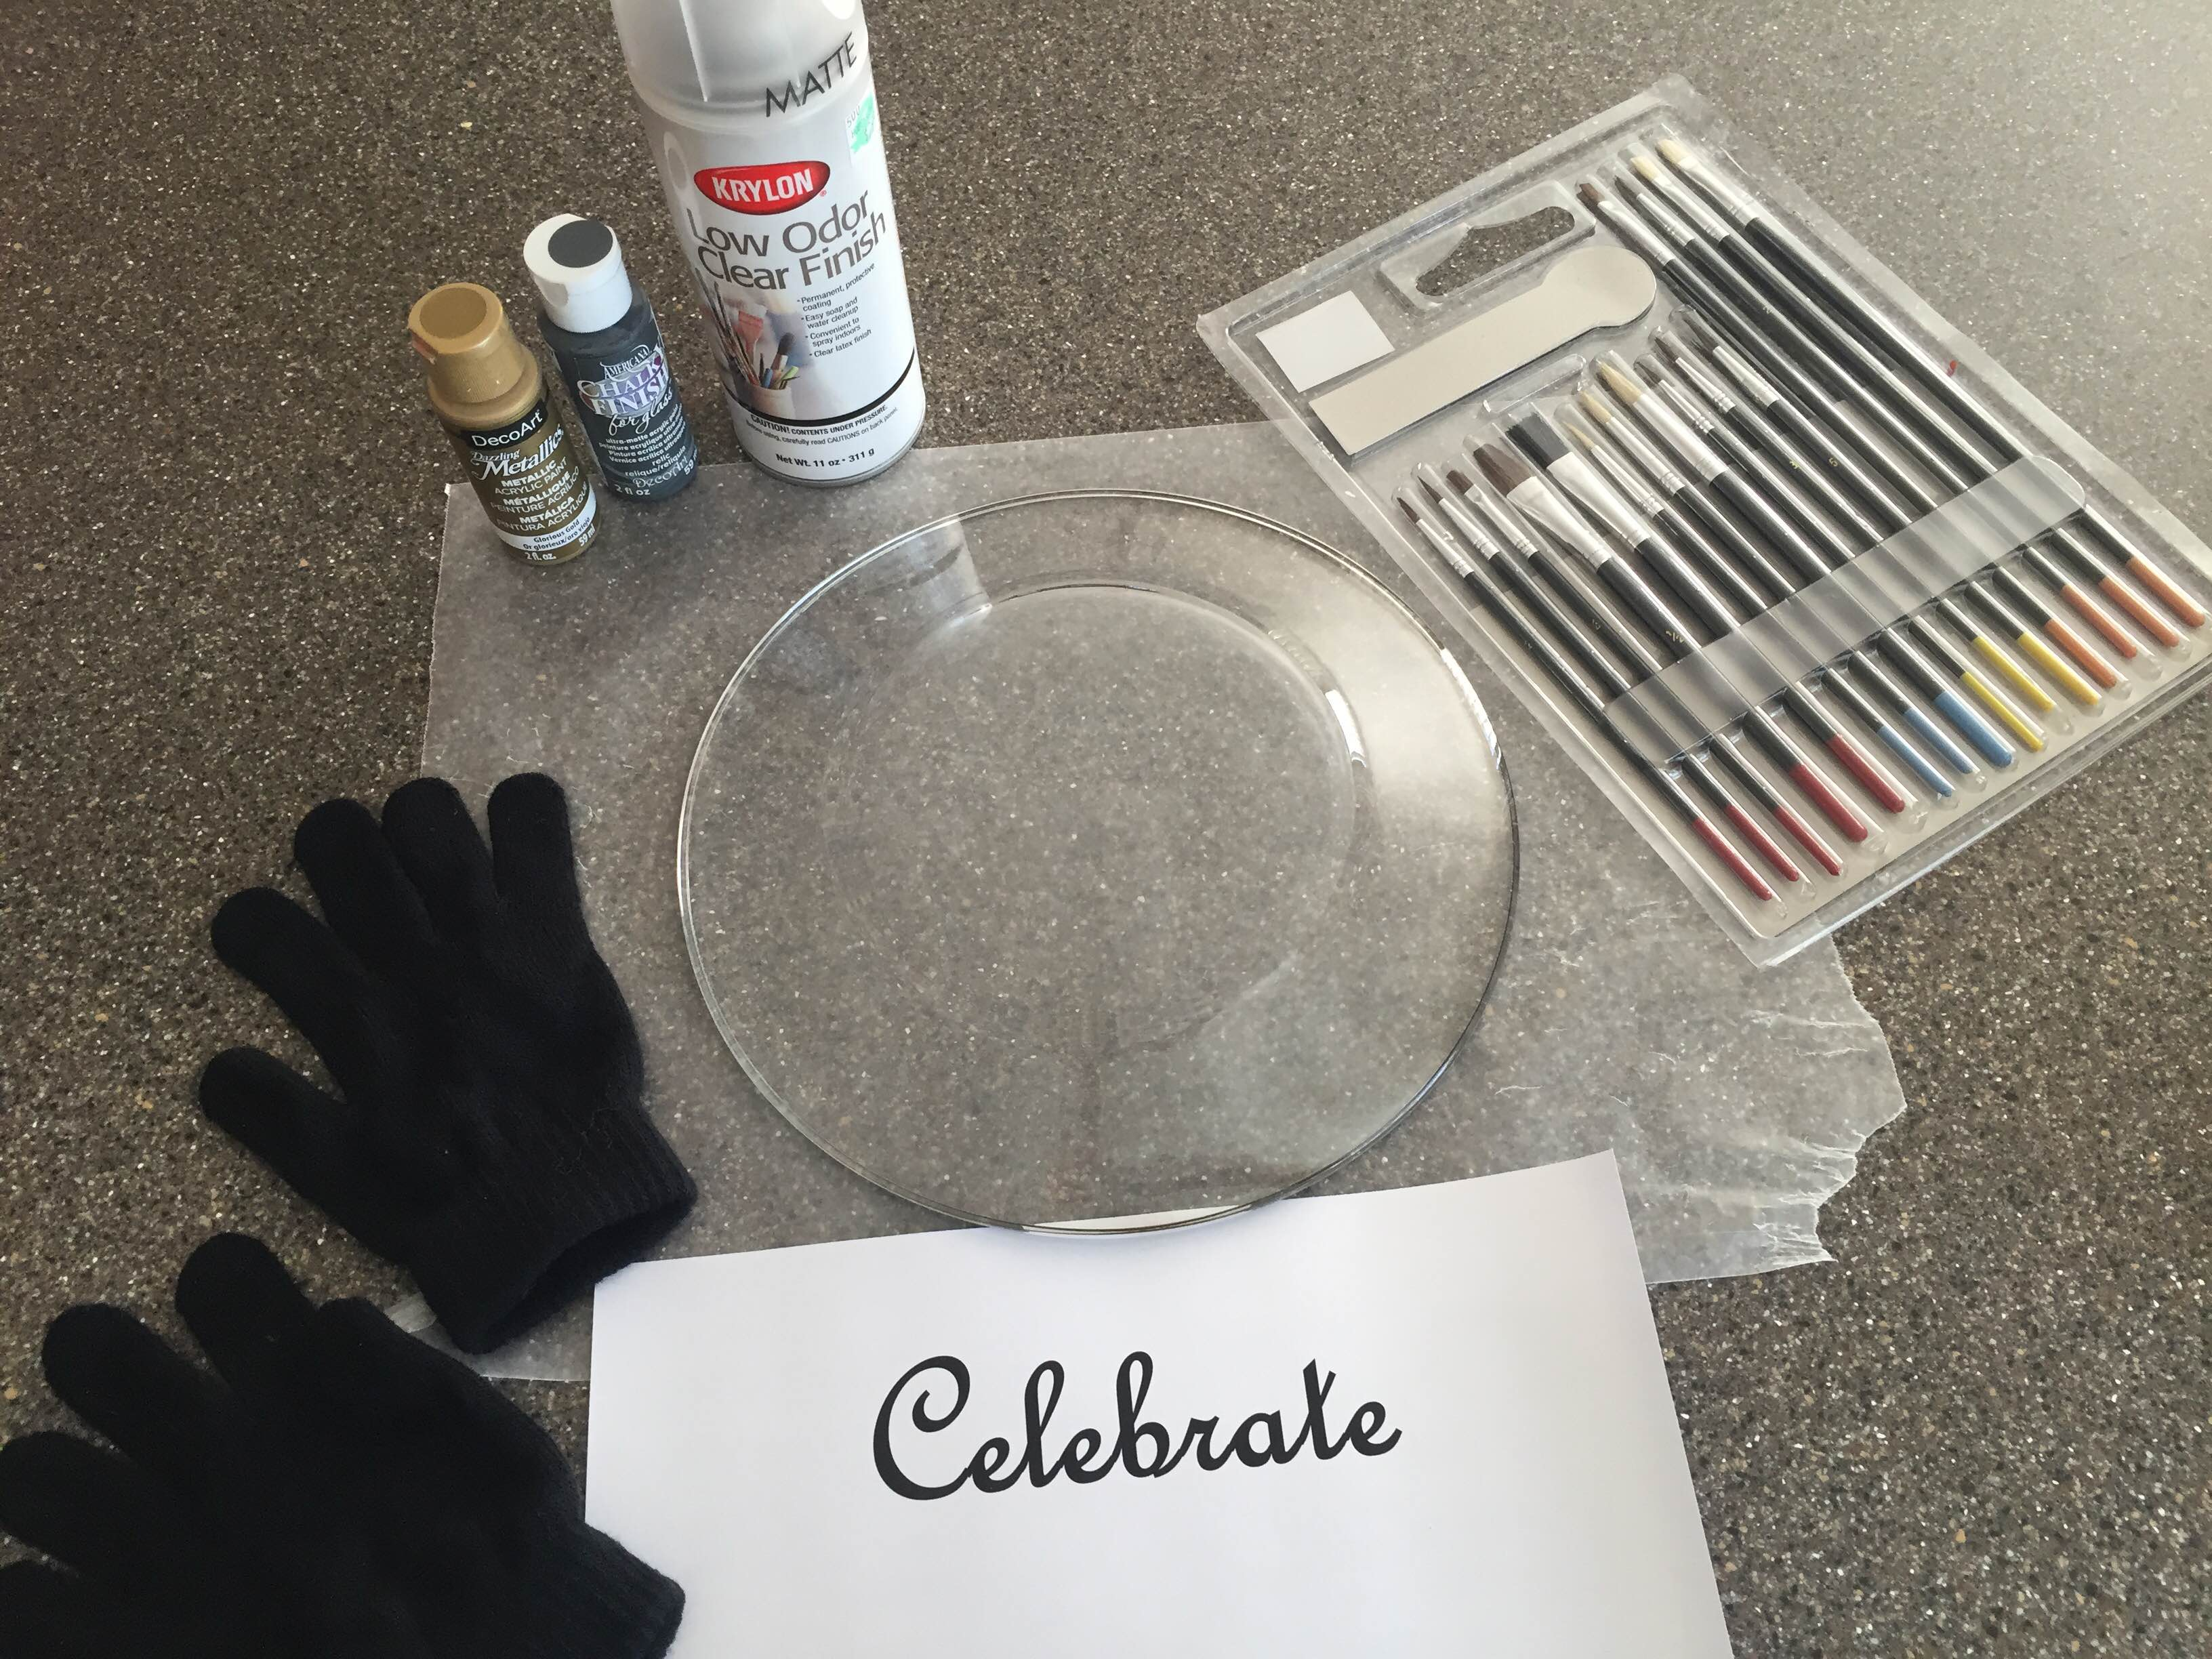 galss plate and painting supplies for painting on glass plate